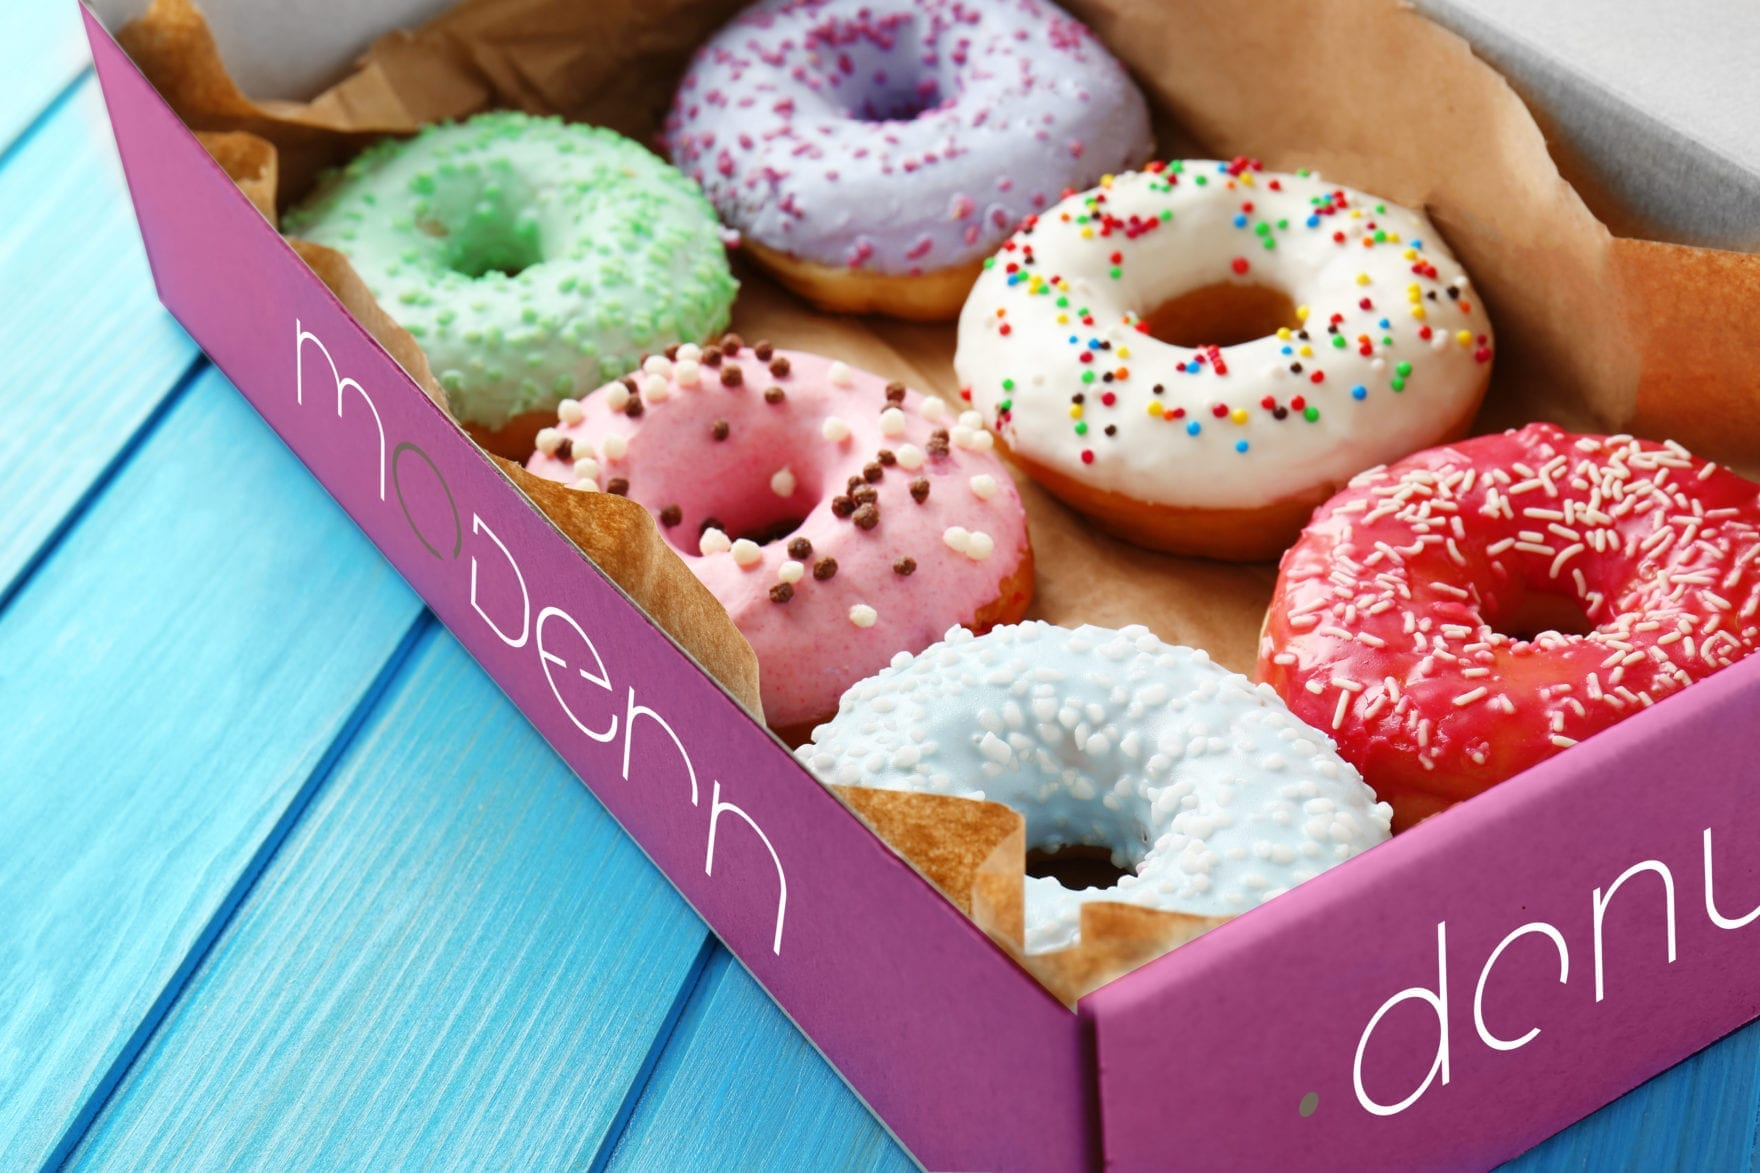 A half dozen delicious donuts by Modern Donuts, branding by Canyon Creative